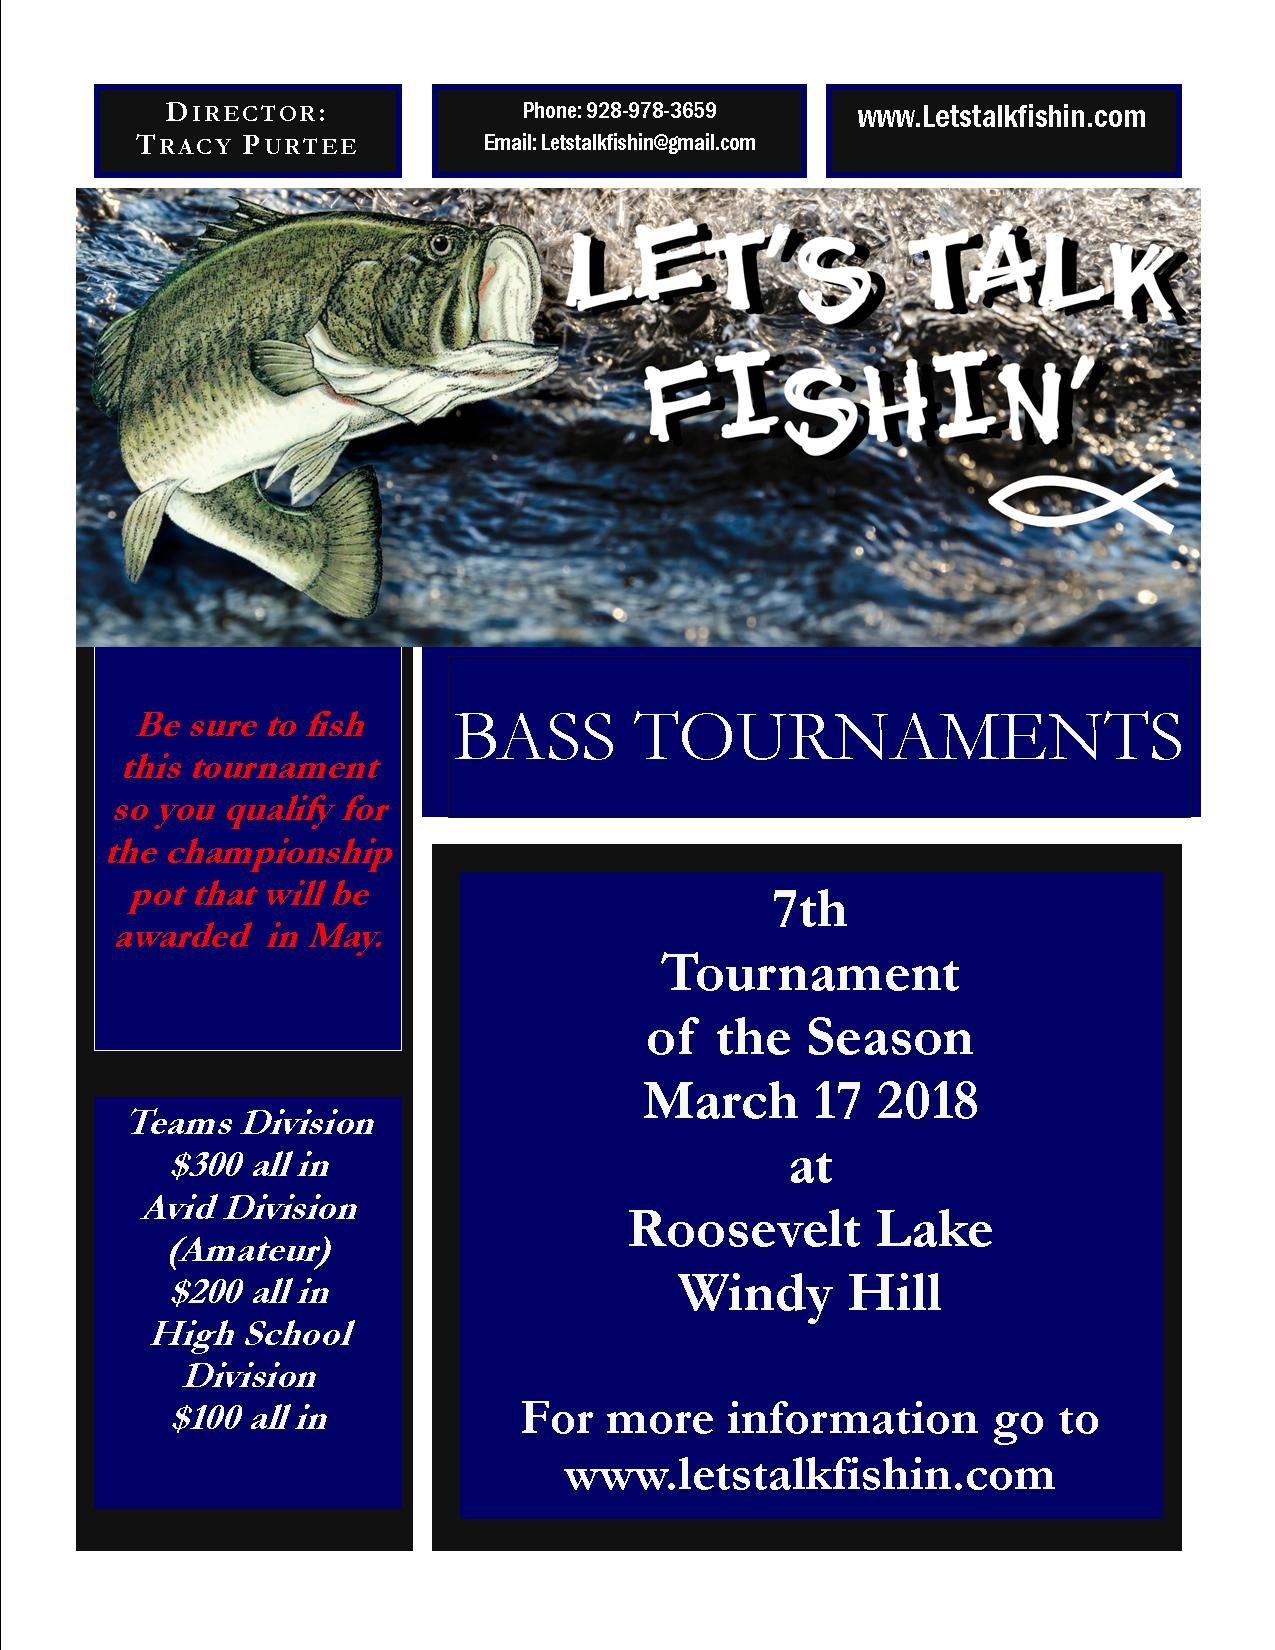 Click image for larger version  Name:7th Tournament.jpg Views:983 Size:283.6 KB ID:96826